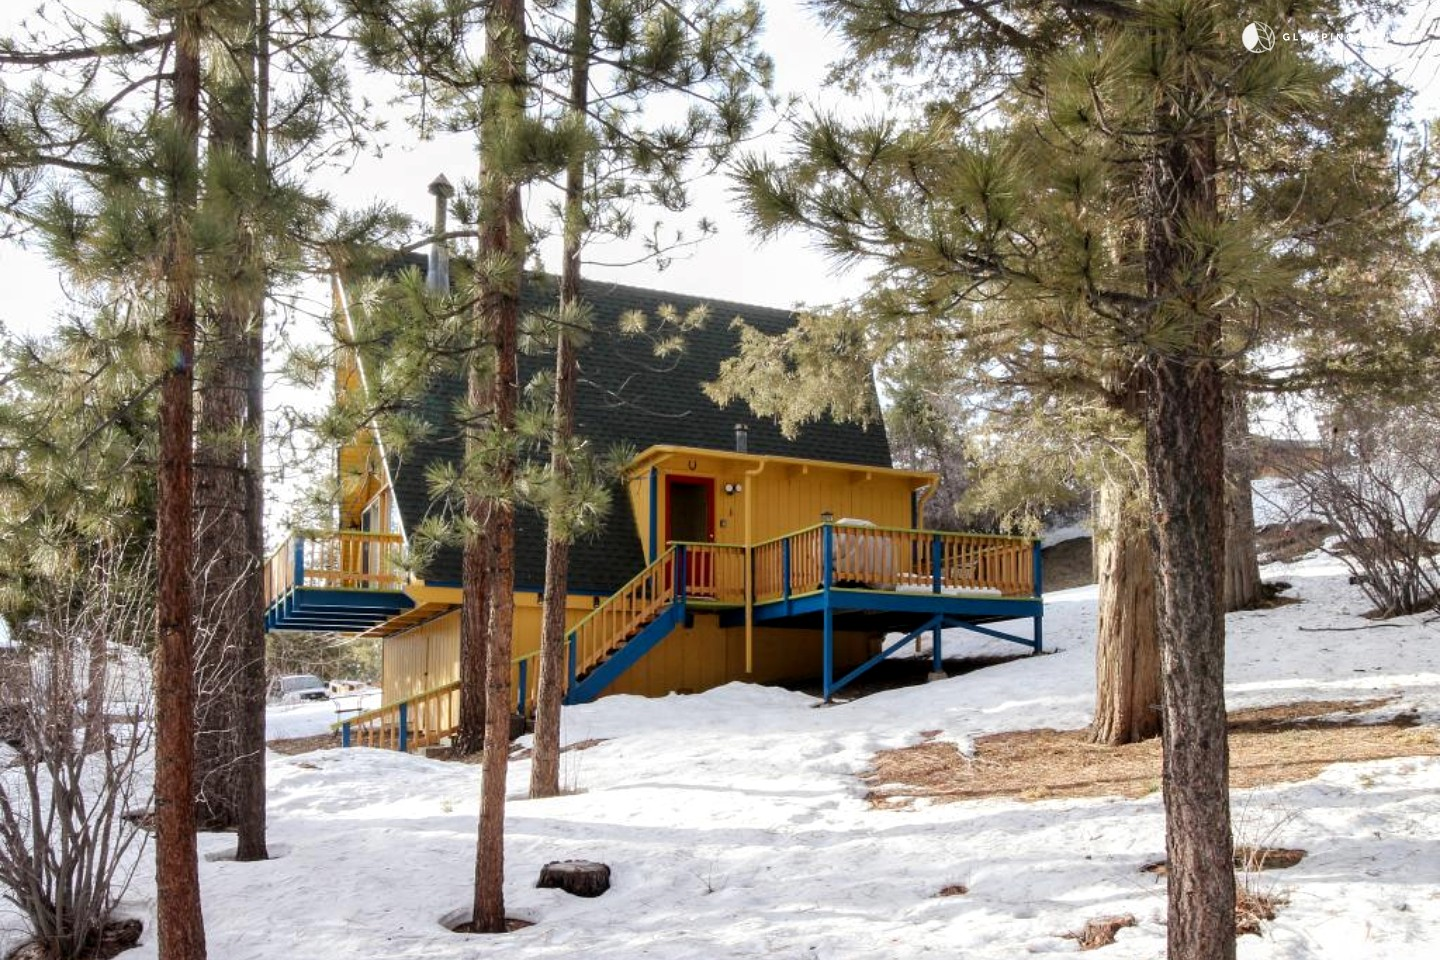 Family cabin getaway in big bear lake california Big bear cabins california